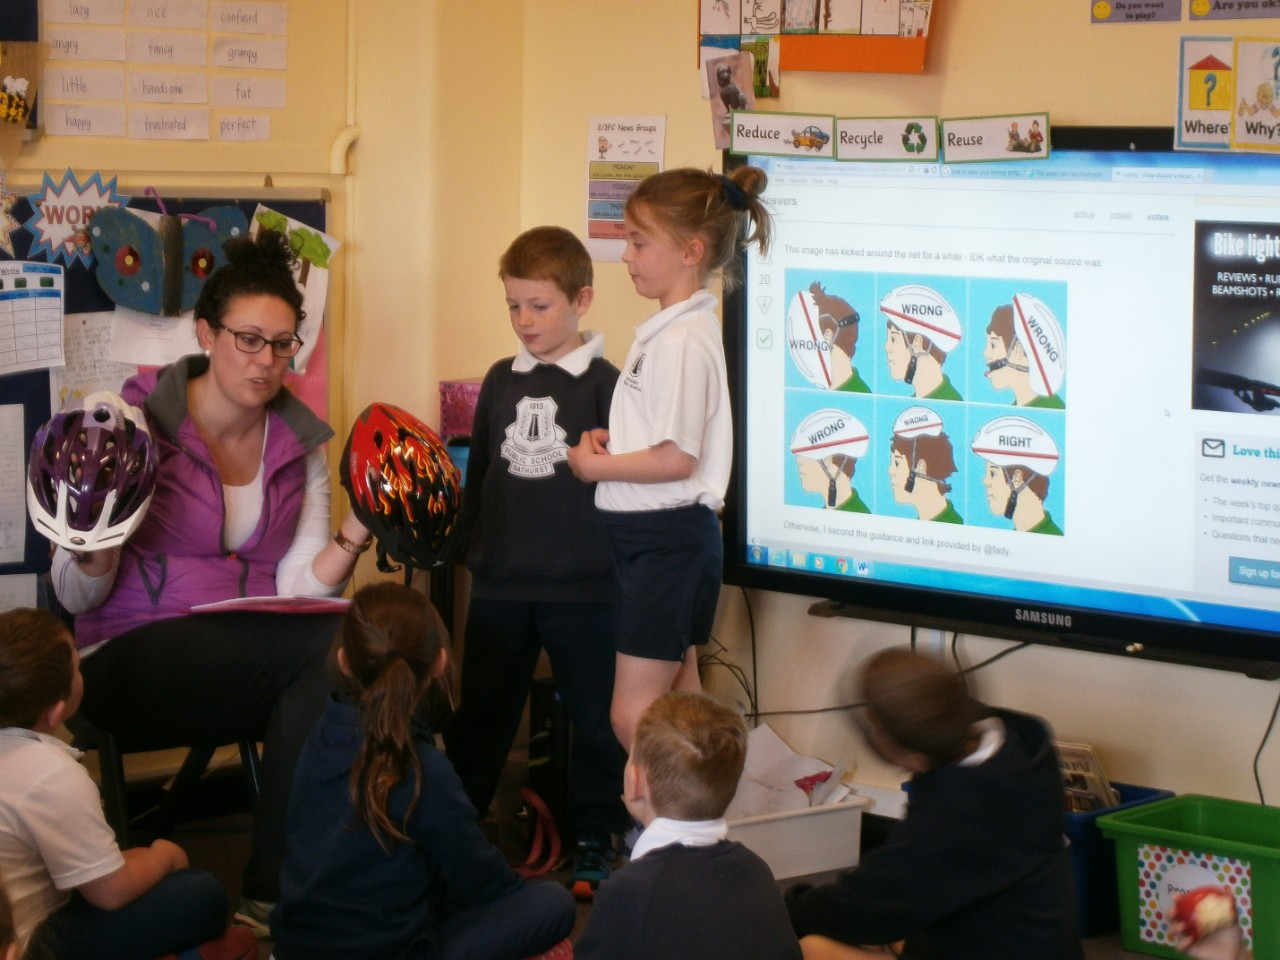 Teacher showing students some helmets with information about how to properly wear a helmet on a TV monitor.